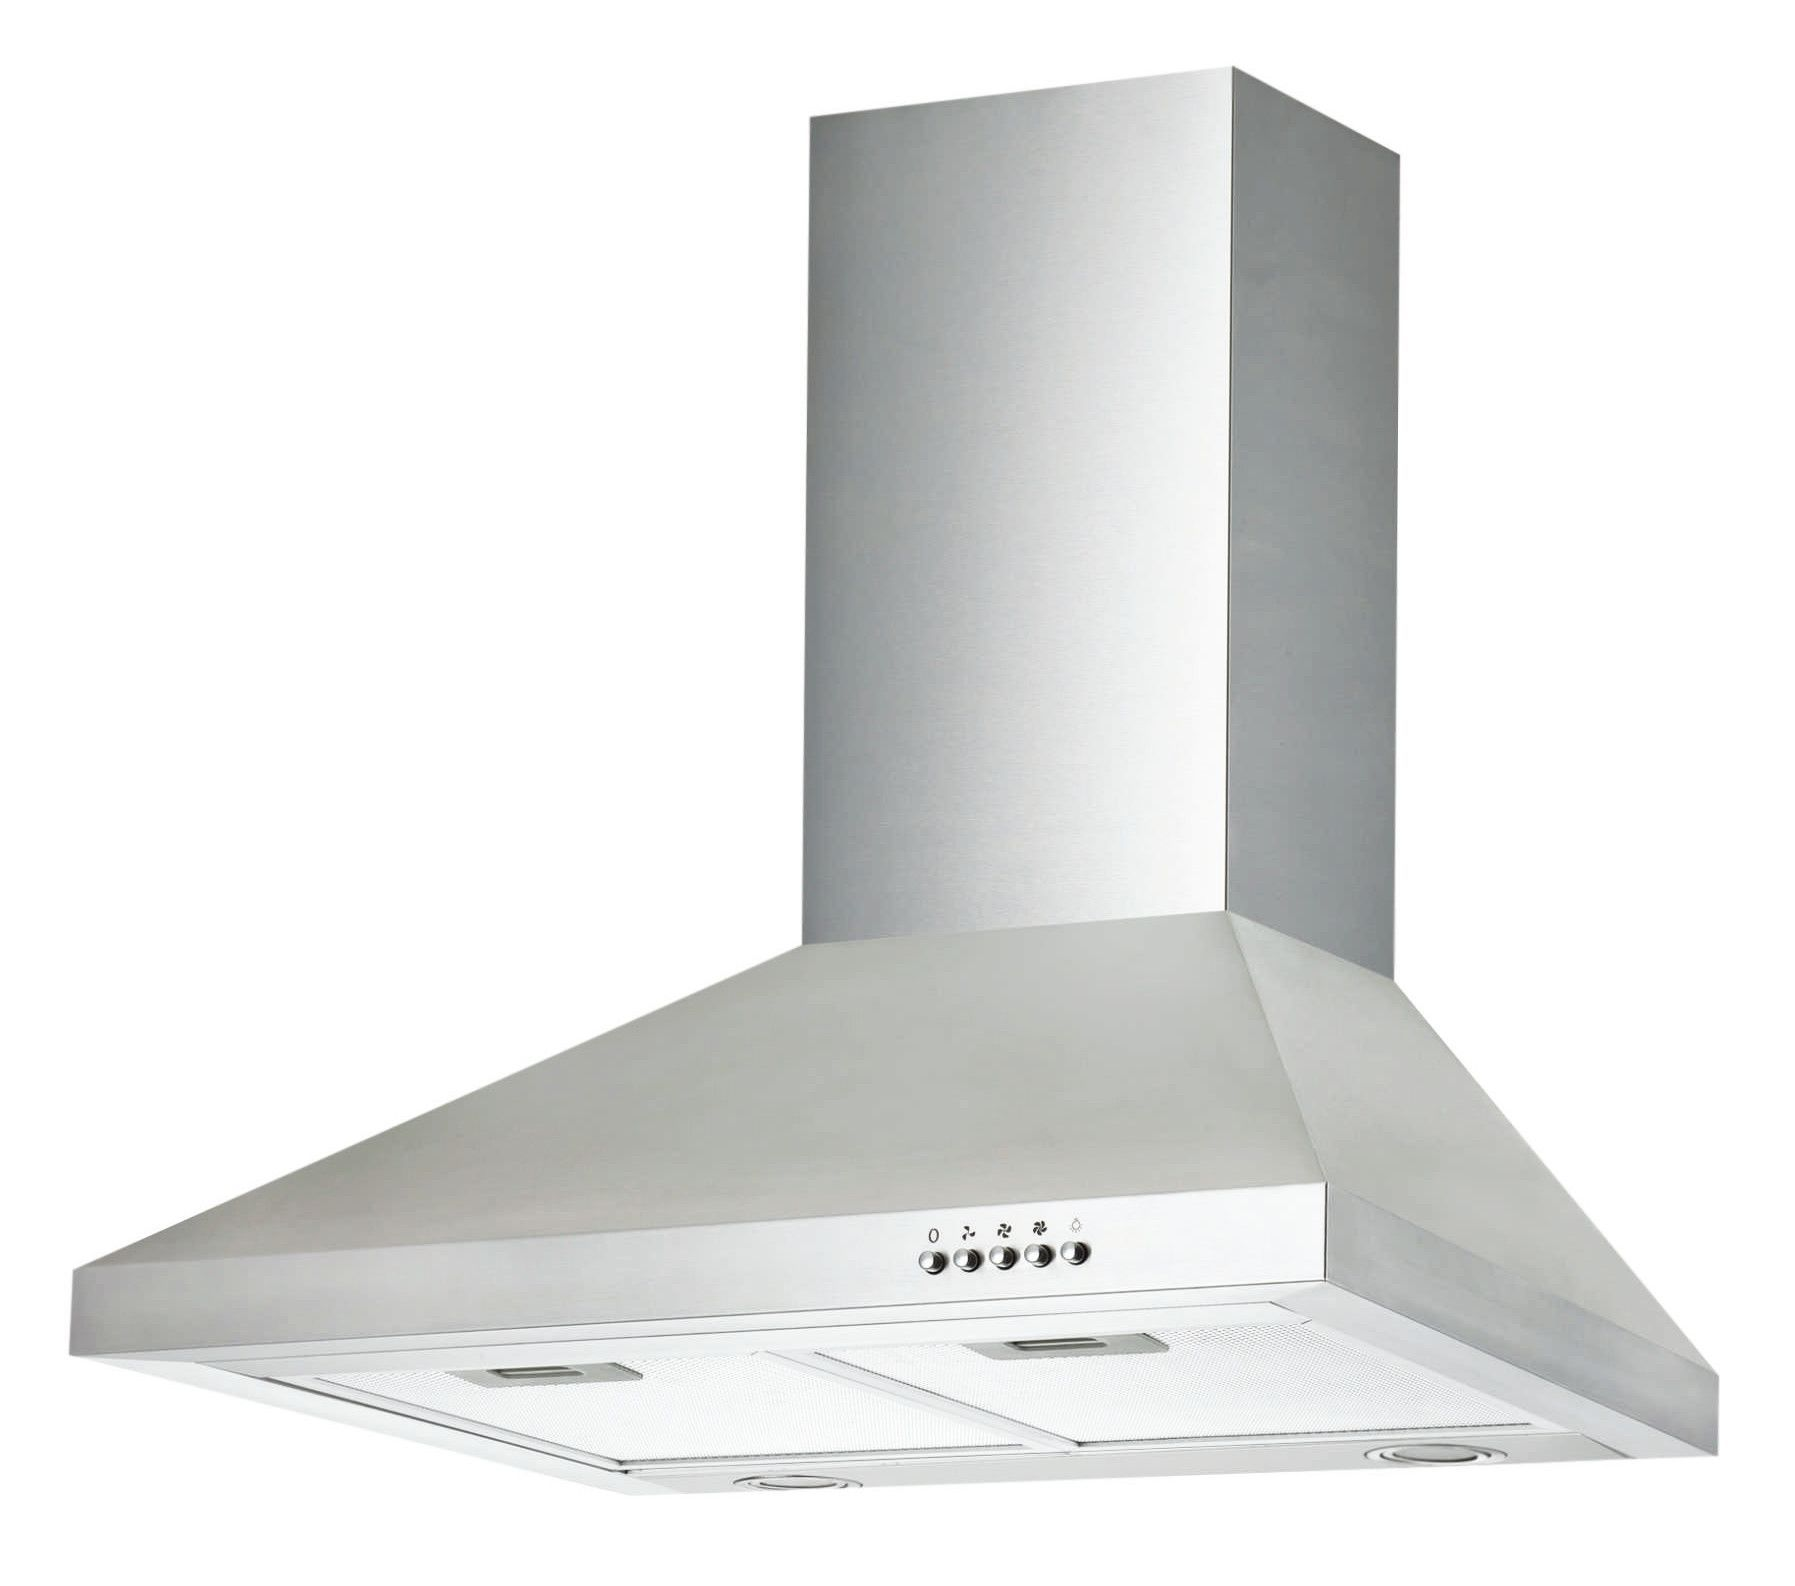 30 inch oswrh668s3bk 30 ak black stainless steel wall mount range hood - 30 400 Cfm Wall Mount Range Hood